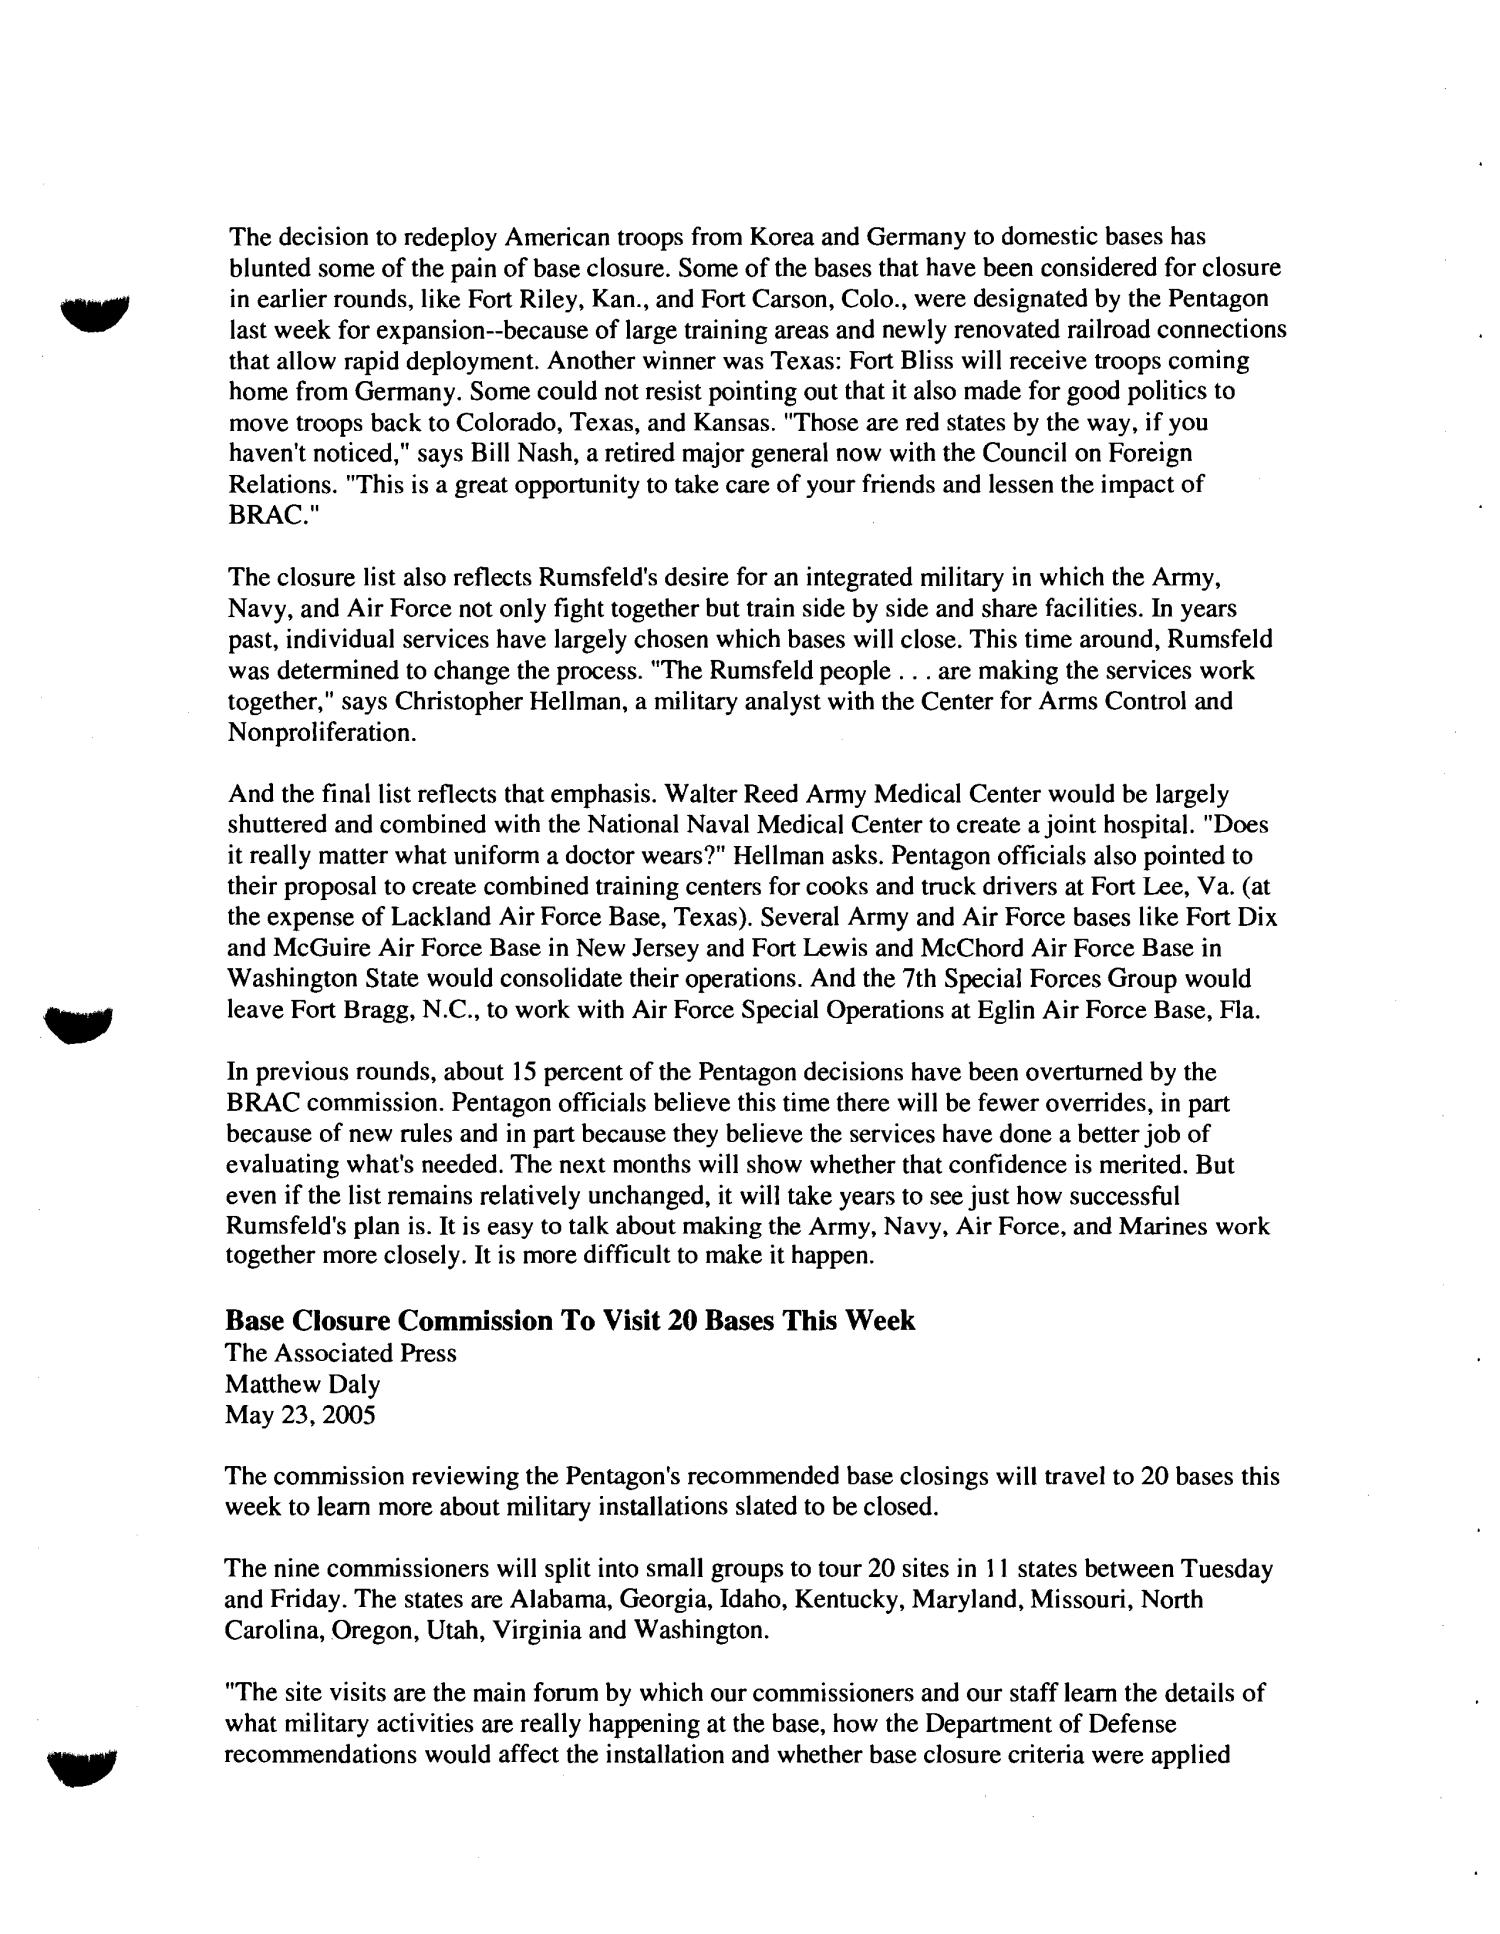 RH3 Media Hearing Book - June 20, 2005 St Louis, MO                                                                                                      [Sequence #]: 21 of 81